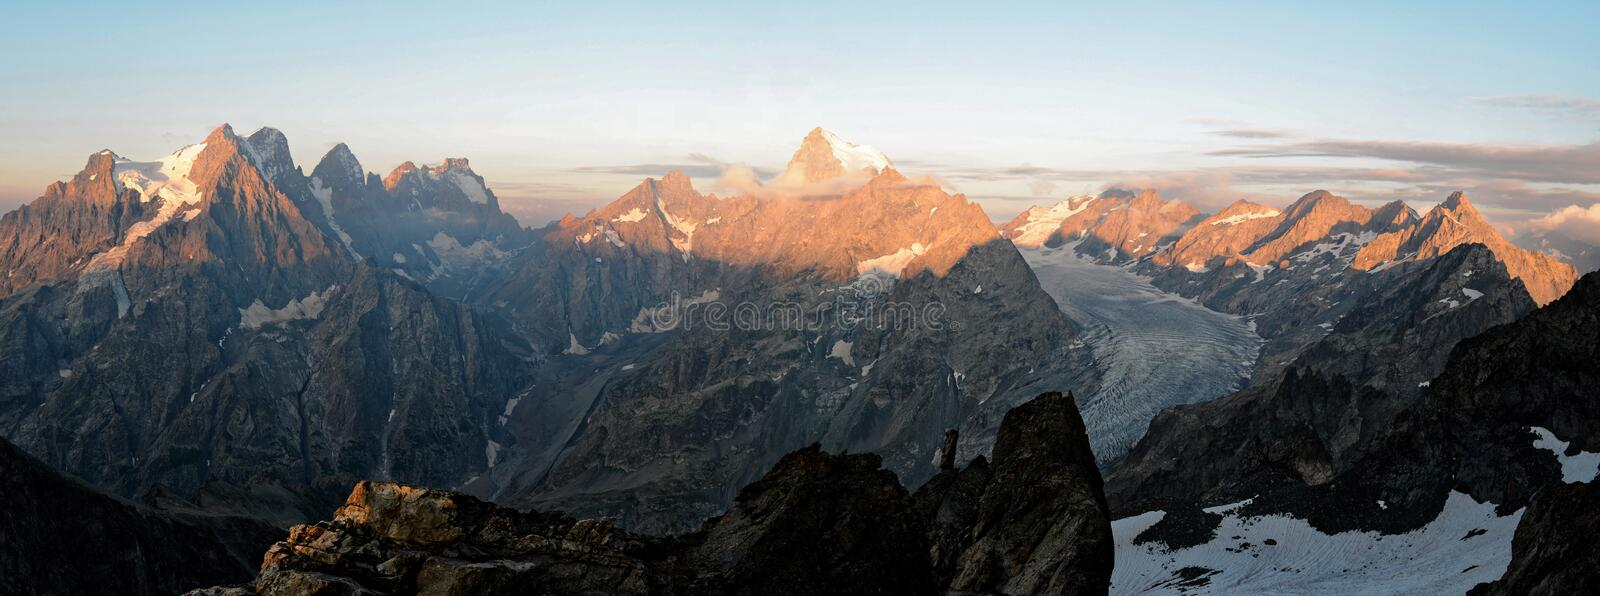 Sunrise on the Ecrins National Park royalty free stock photos